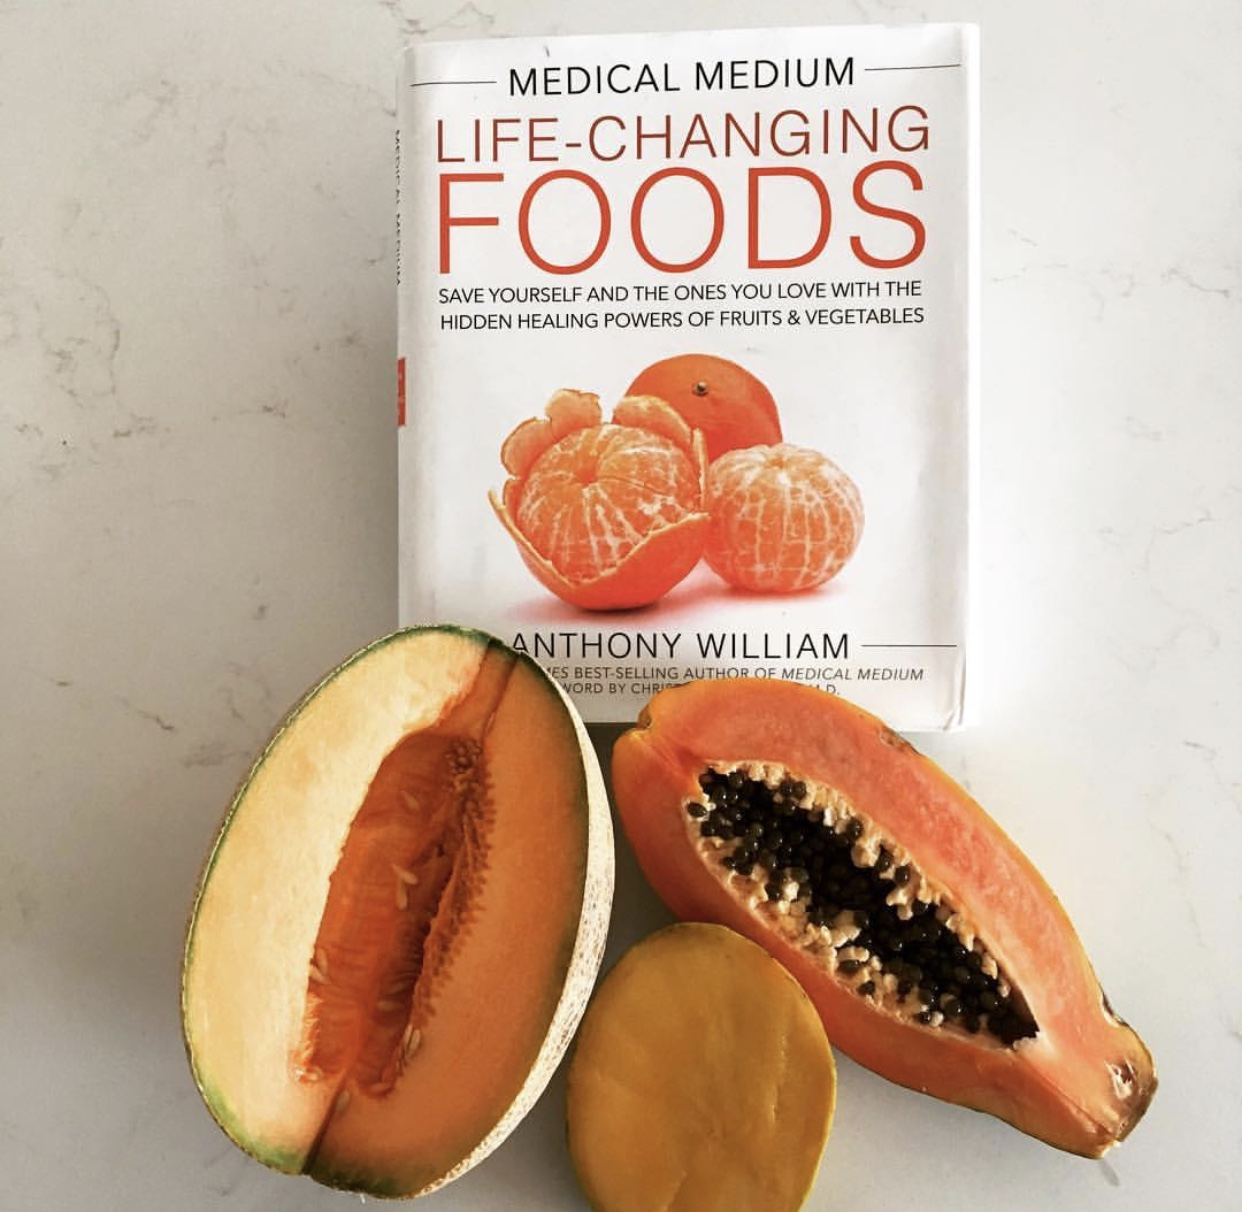 Anthony williams medical medium bad reviews - What Was Your Diet Like Before You Started The Medical Medium Protocol